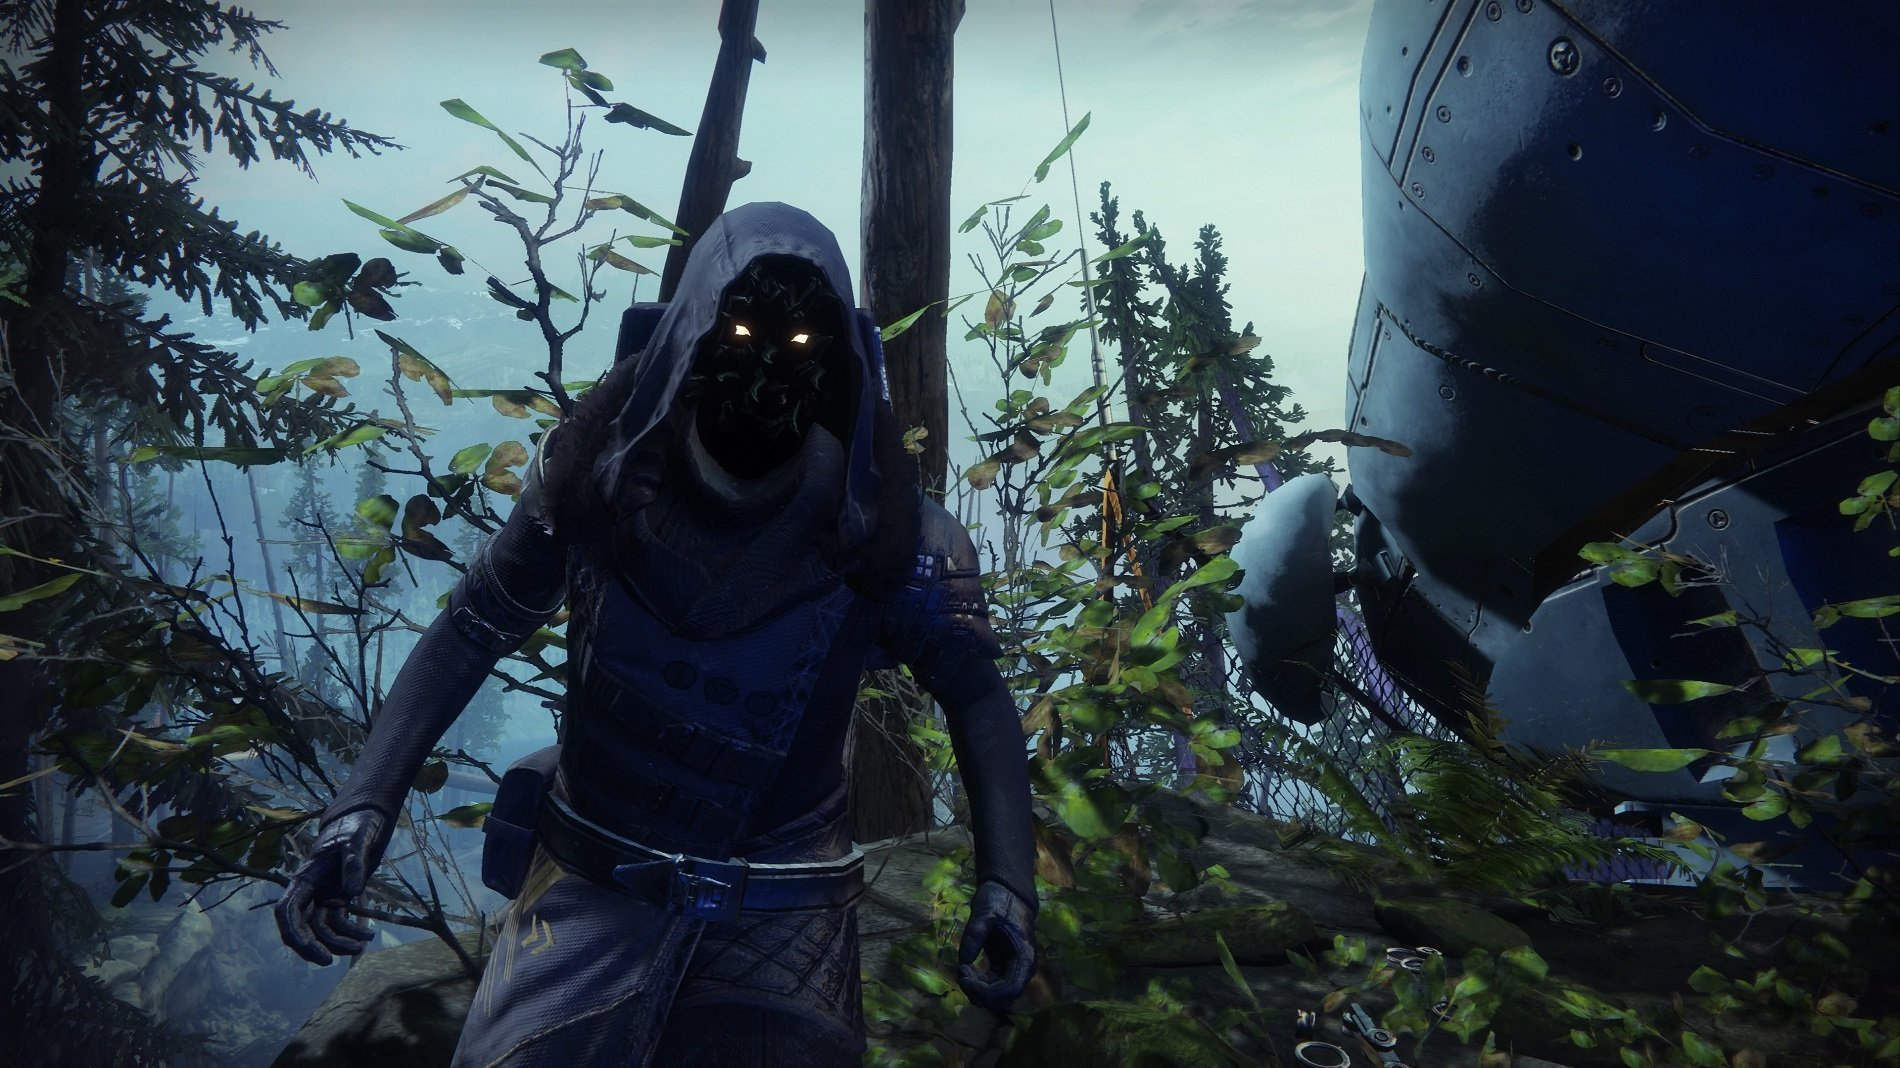 Where to find Xur in Destiny 2 - June 5, 2020